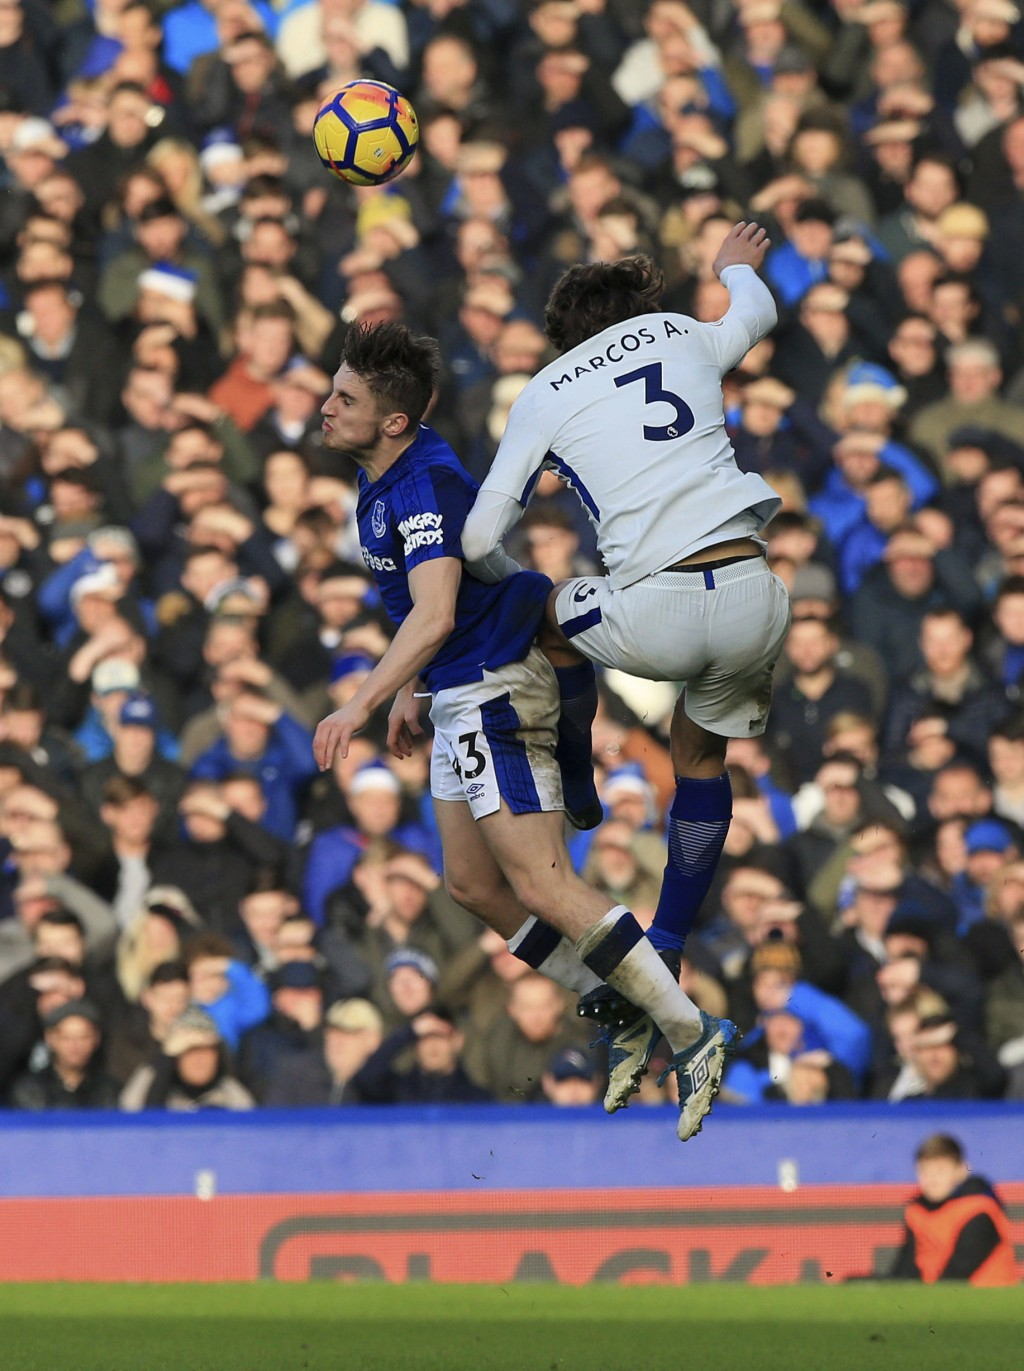 Everton's Jonjoe Kenny, left, and Chelsea's Marcos Alonso battle for the ball during the English Premier League soccer match between Everton and Chels...